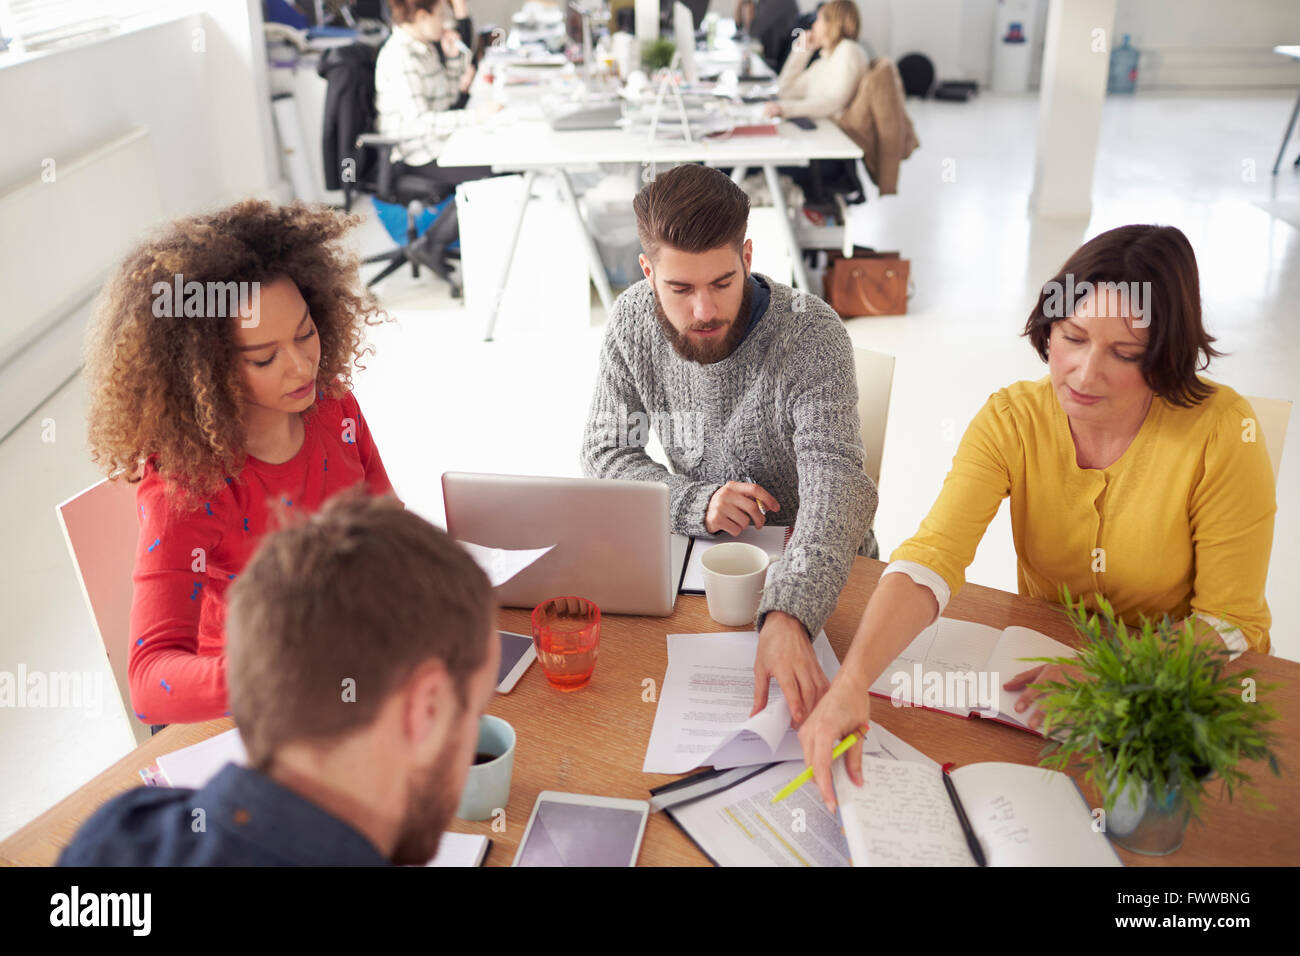 High Angle View Of Business Meeting In Modern Busy Office - Stock Image